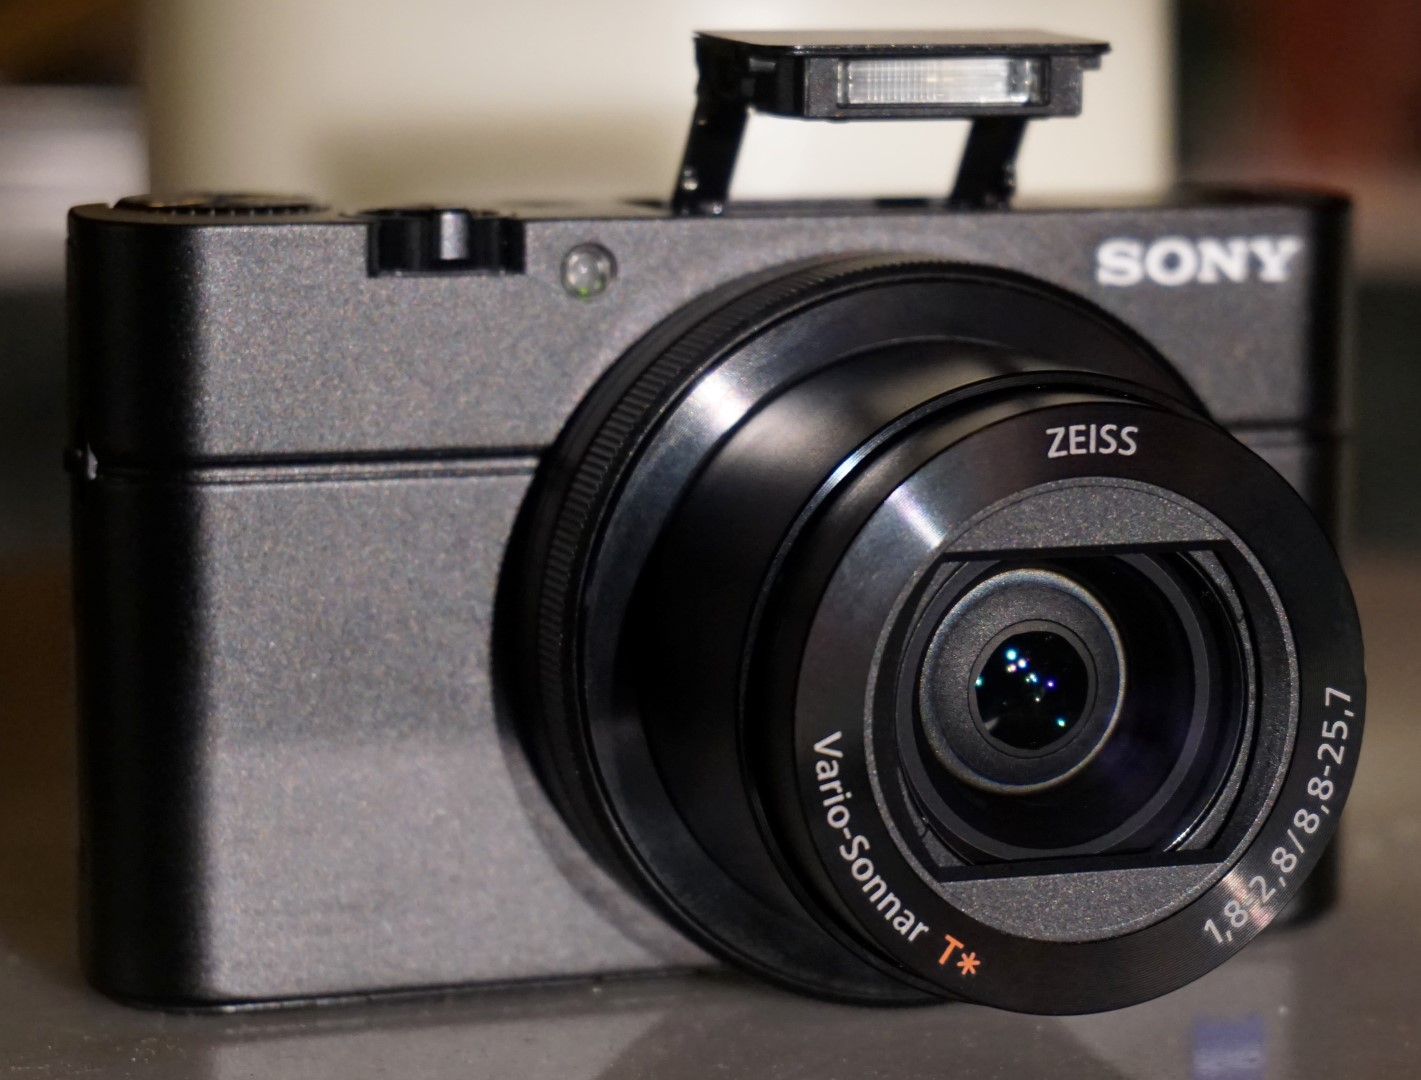 sony cyber shot dsc rx100 iii camera news at cameraegg. Black Bedroom Furniture Sets. Home Design Ideas